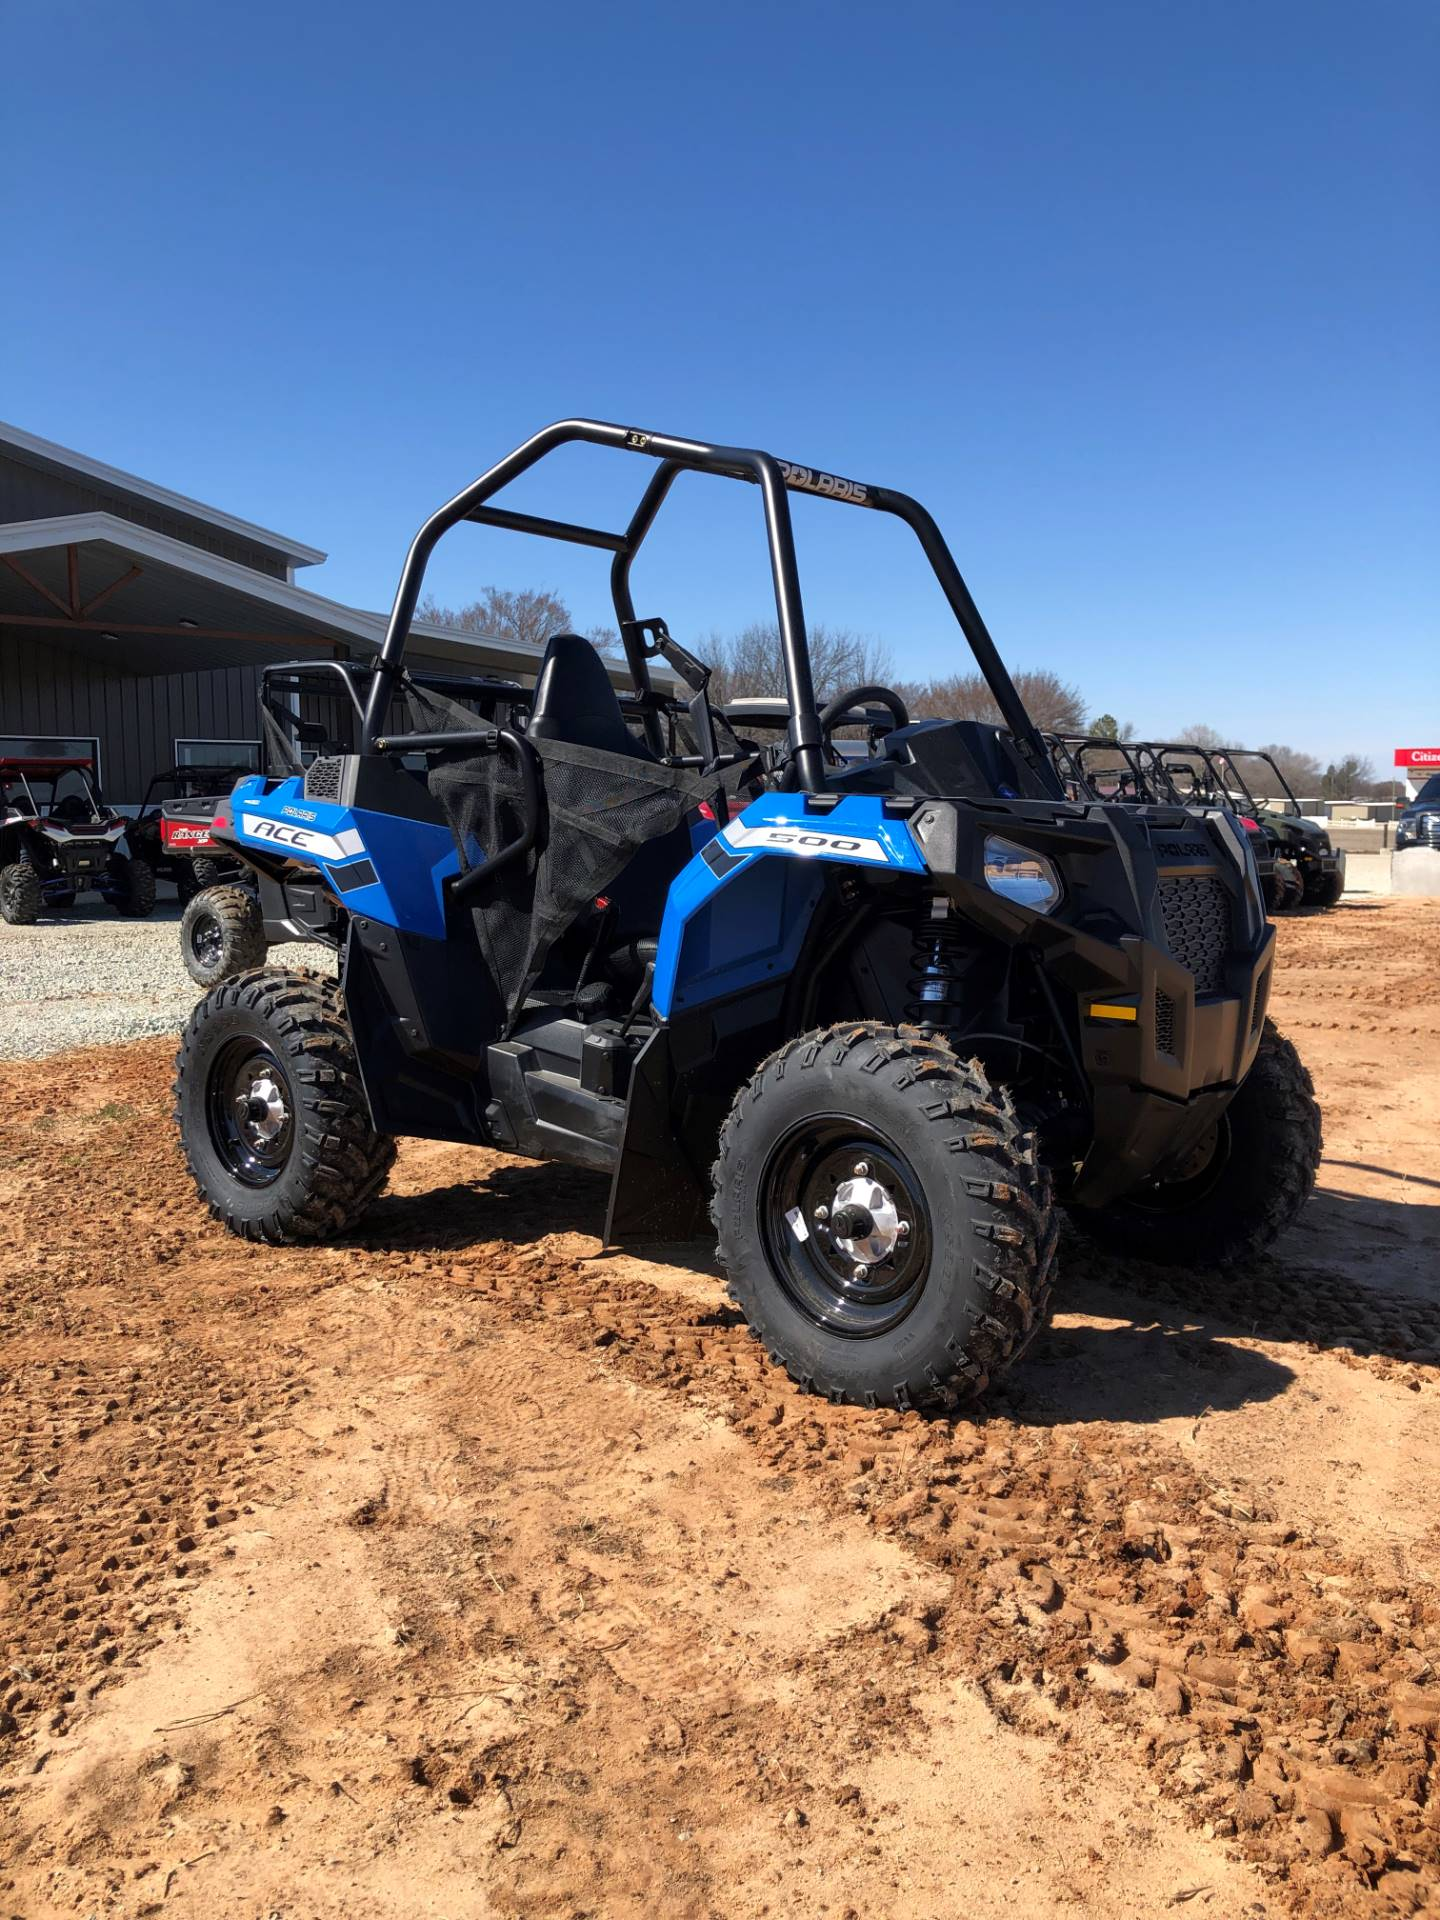 2019 Polaris Ace 500 in Ada, Oklahoma - Photo 1